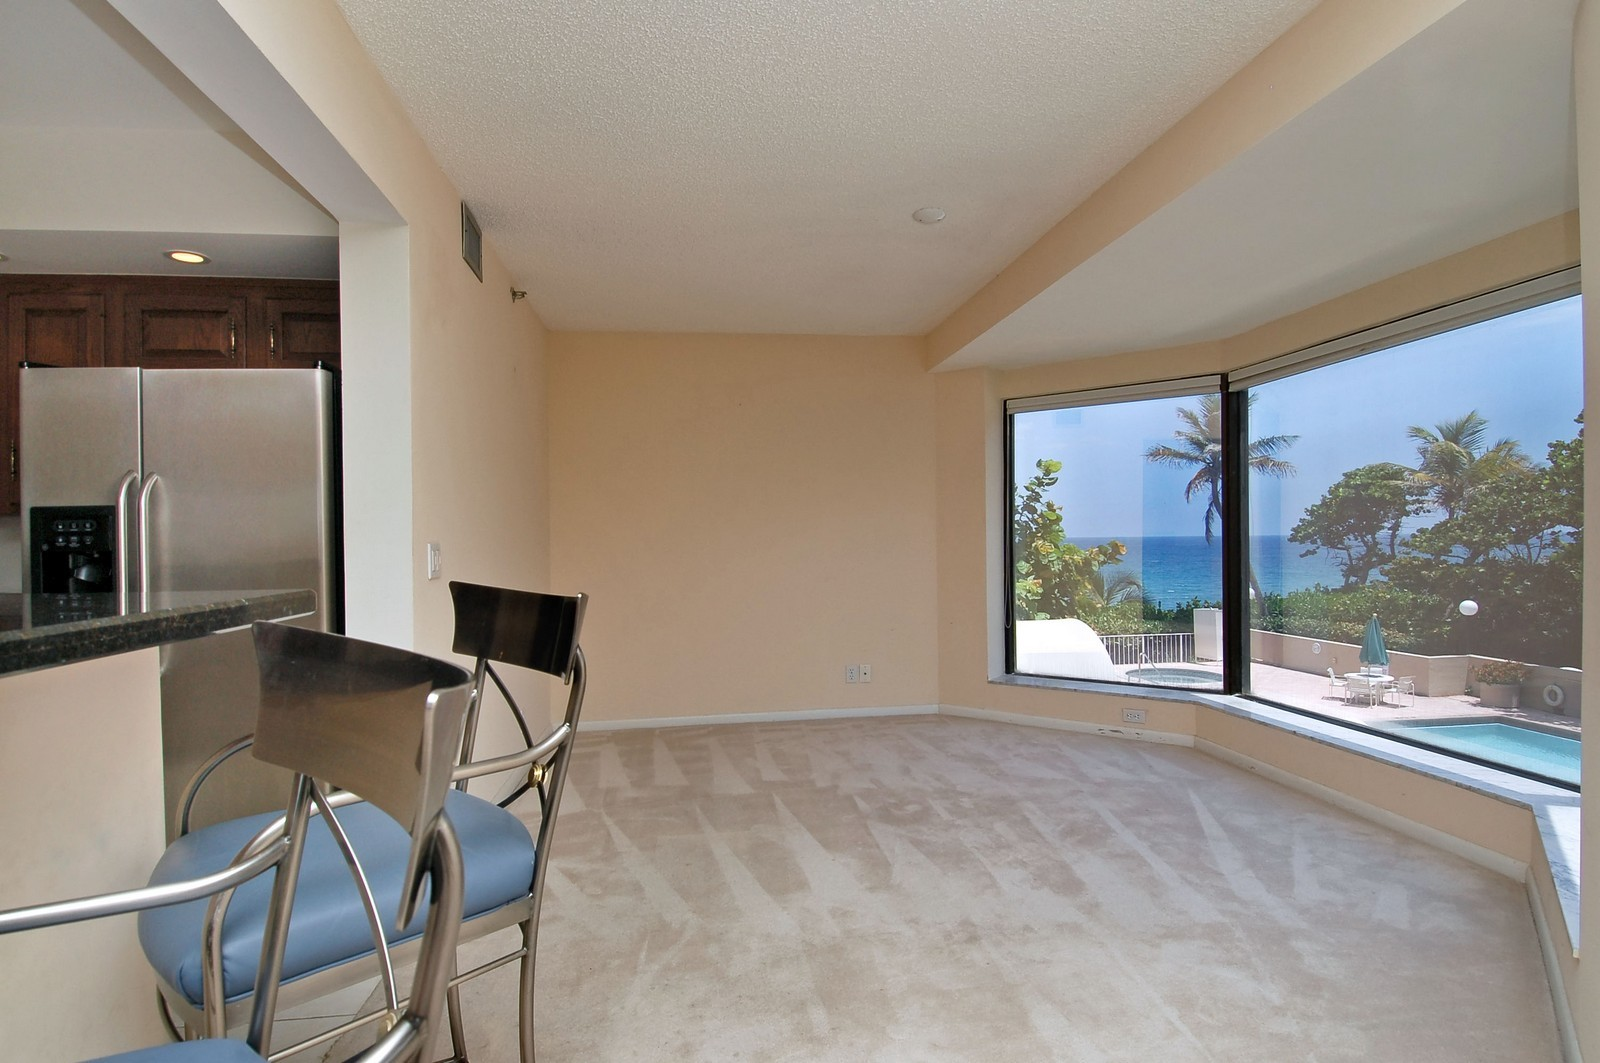 Real Estate Photography - 4605 S Ocean Blvd, Unit 3B, Highland Beach, FL, 33487 - Location 3